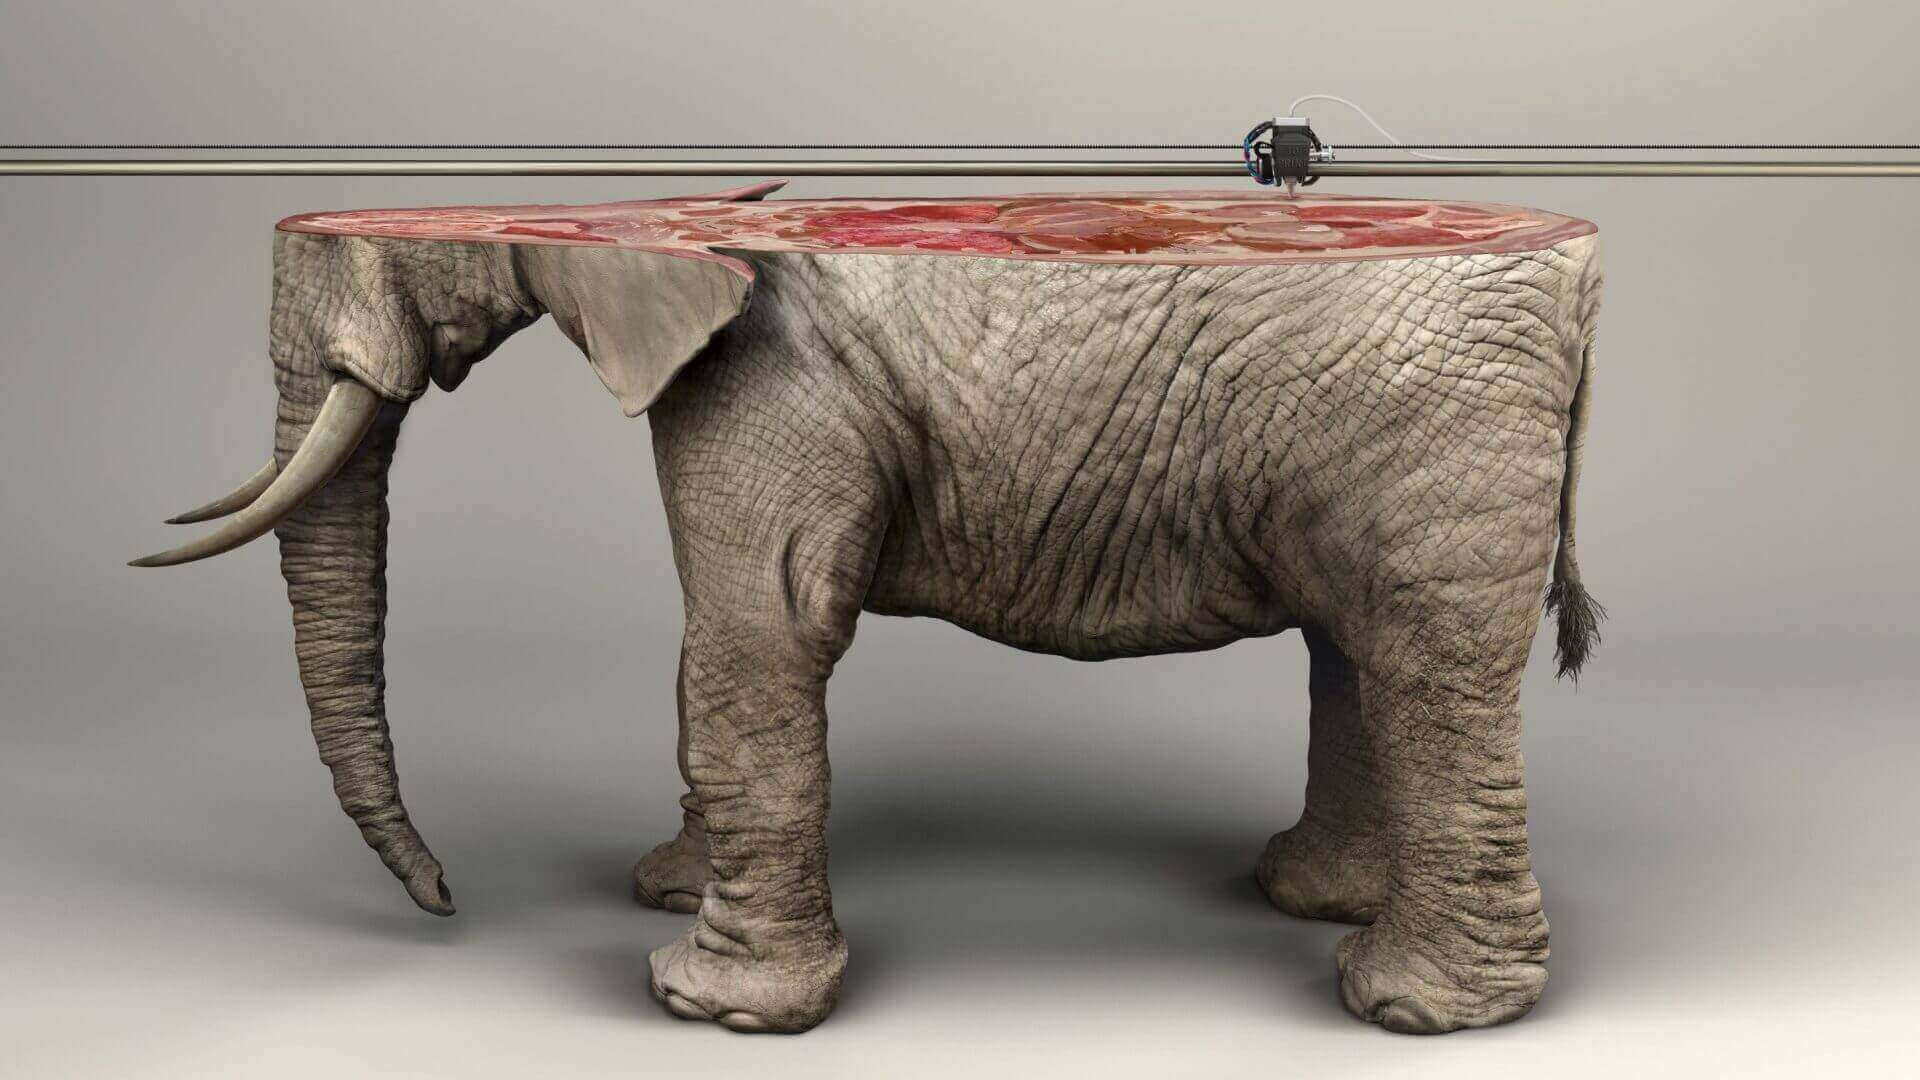 IFAW Awareness Campaign 3D Prints Endangered Animals | All3DP